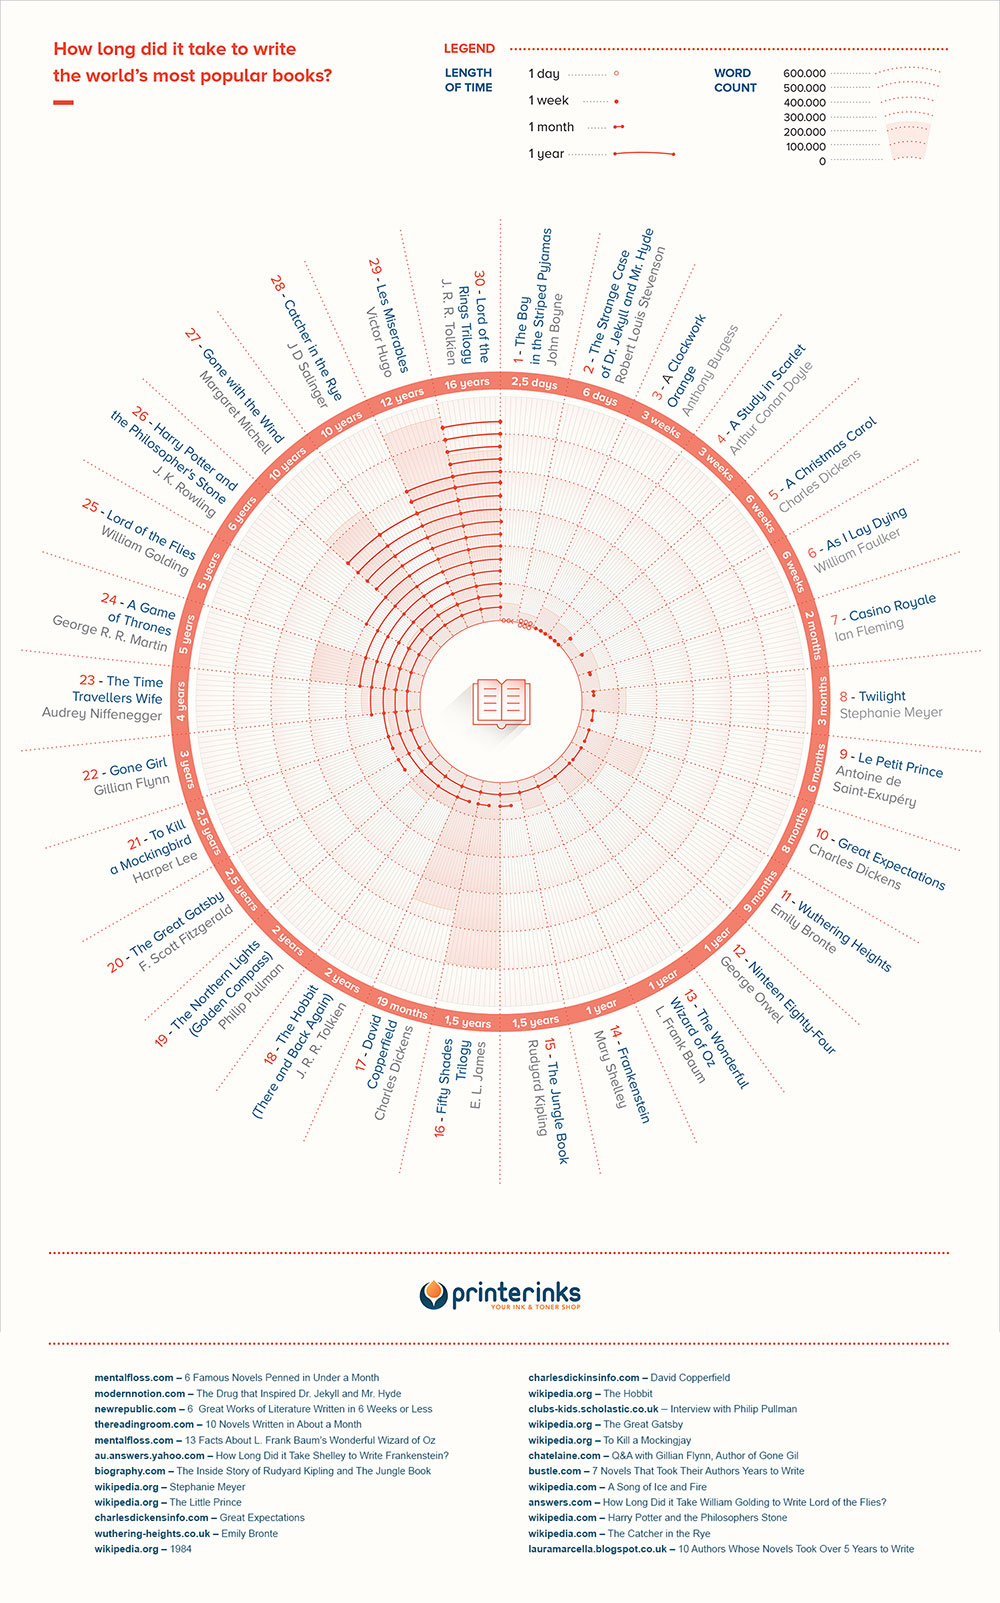 How-Long-Did-it-Take-to-Write-the-World's-Most-Famous-Books